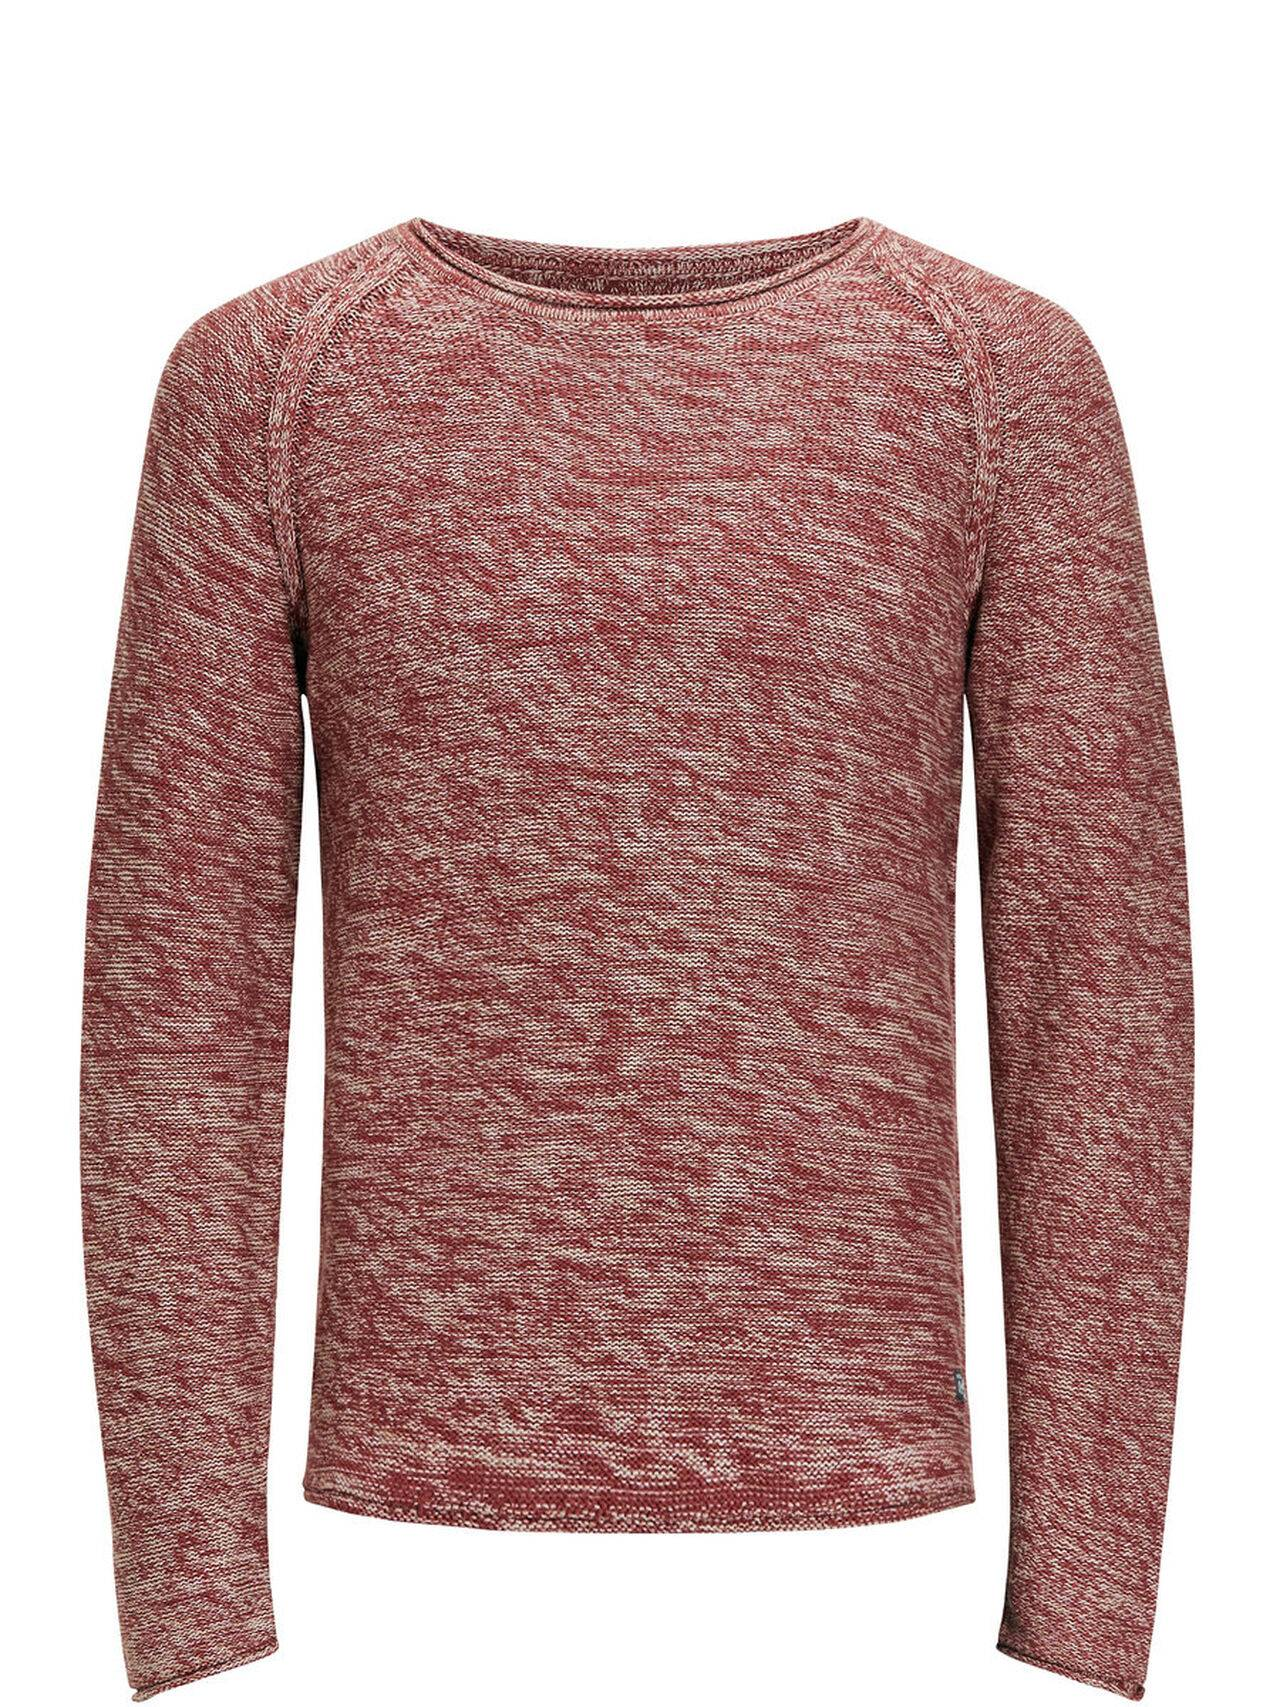 Jack & Jones Casual Knitted Pullover Rosewood